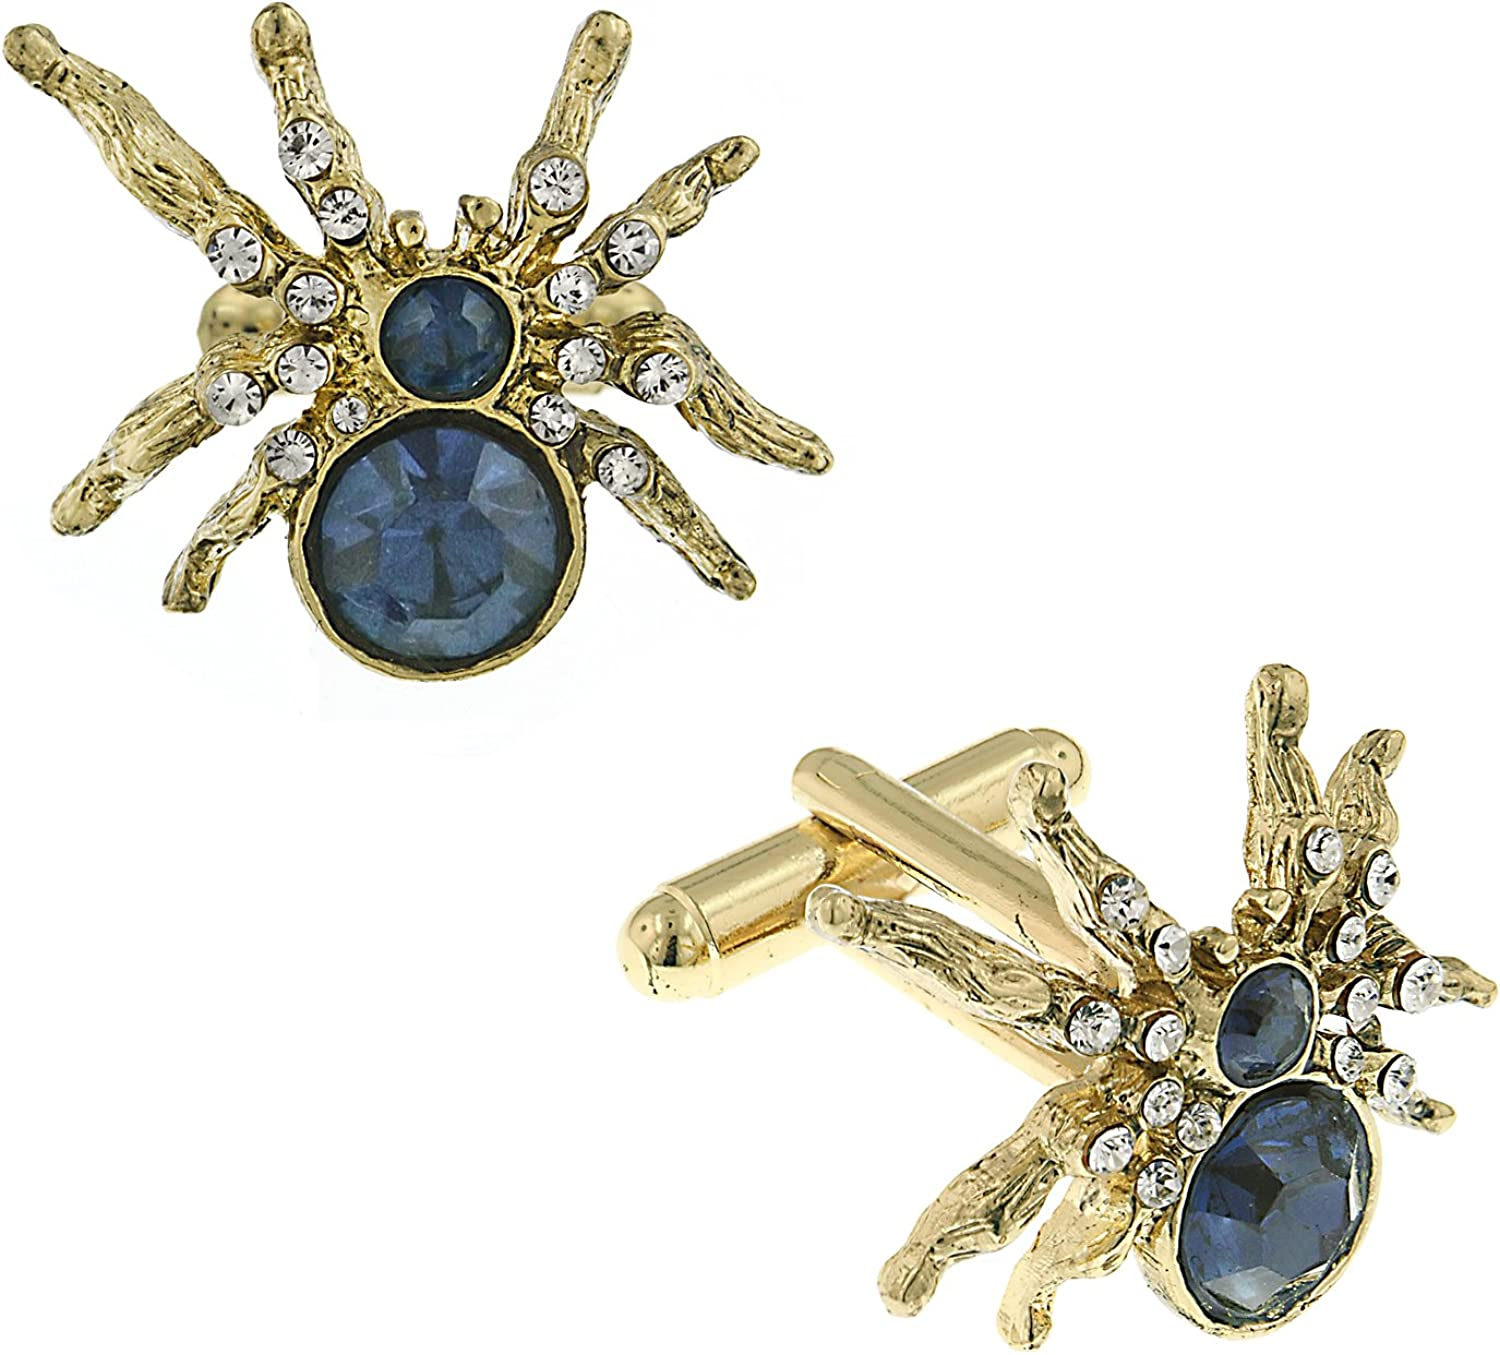 1928 Jewelry Men's Gold Tone and Crystal Spider Cuff Links